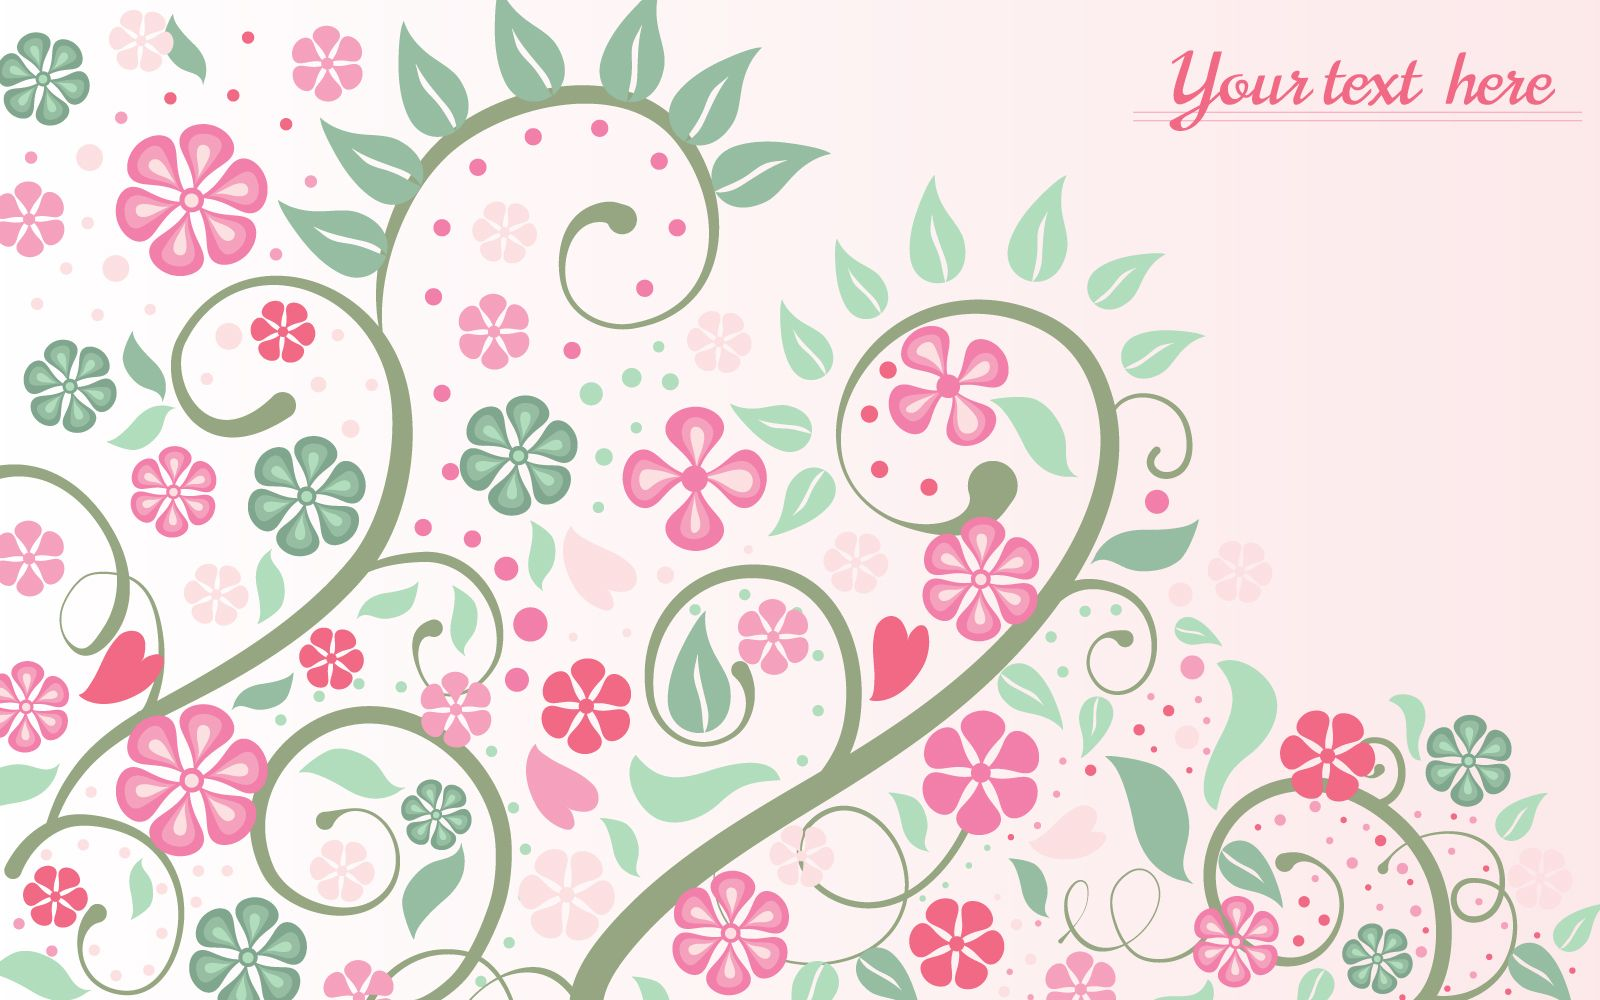 Pink floral background with swirls and leaves vector download - Floral background ...